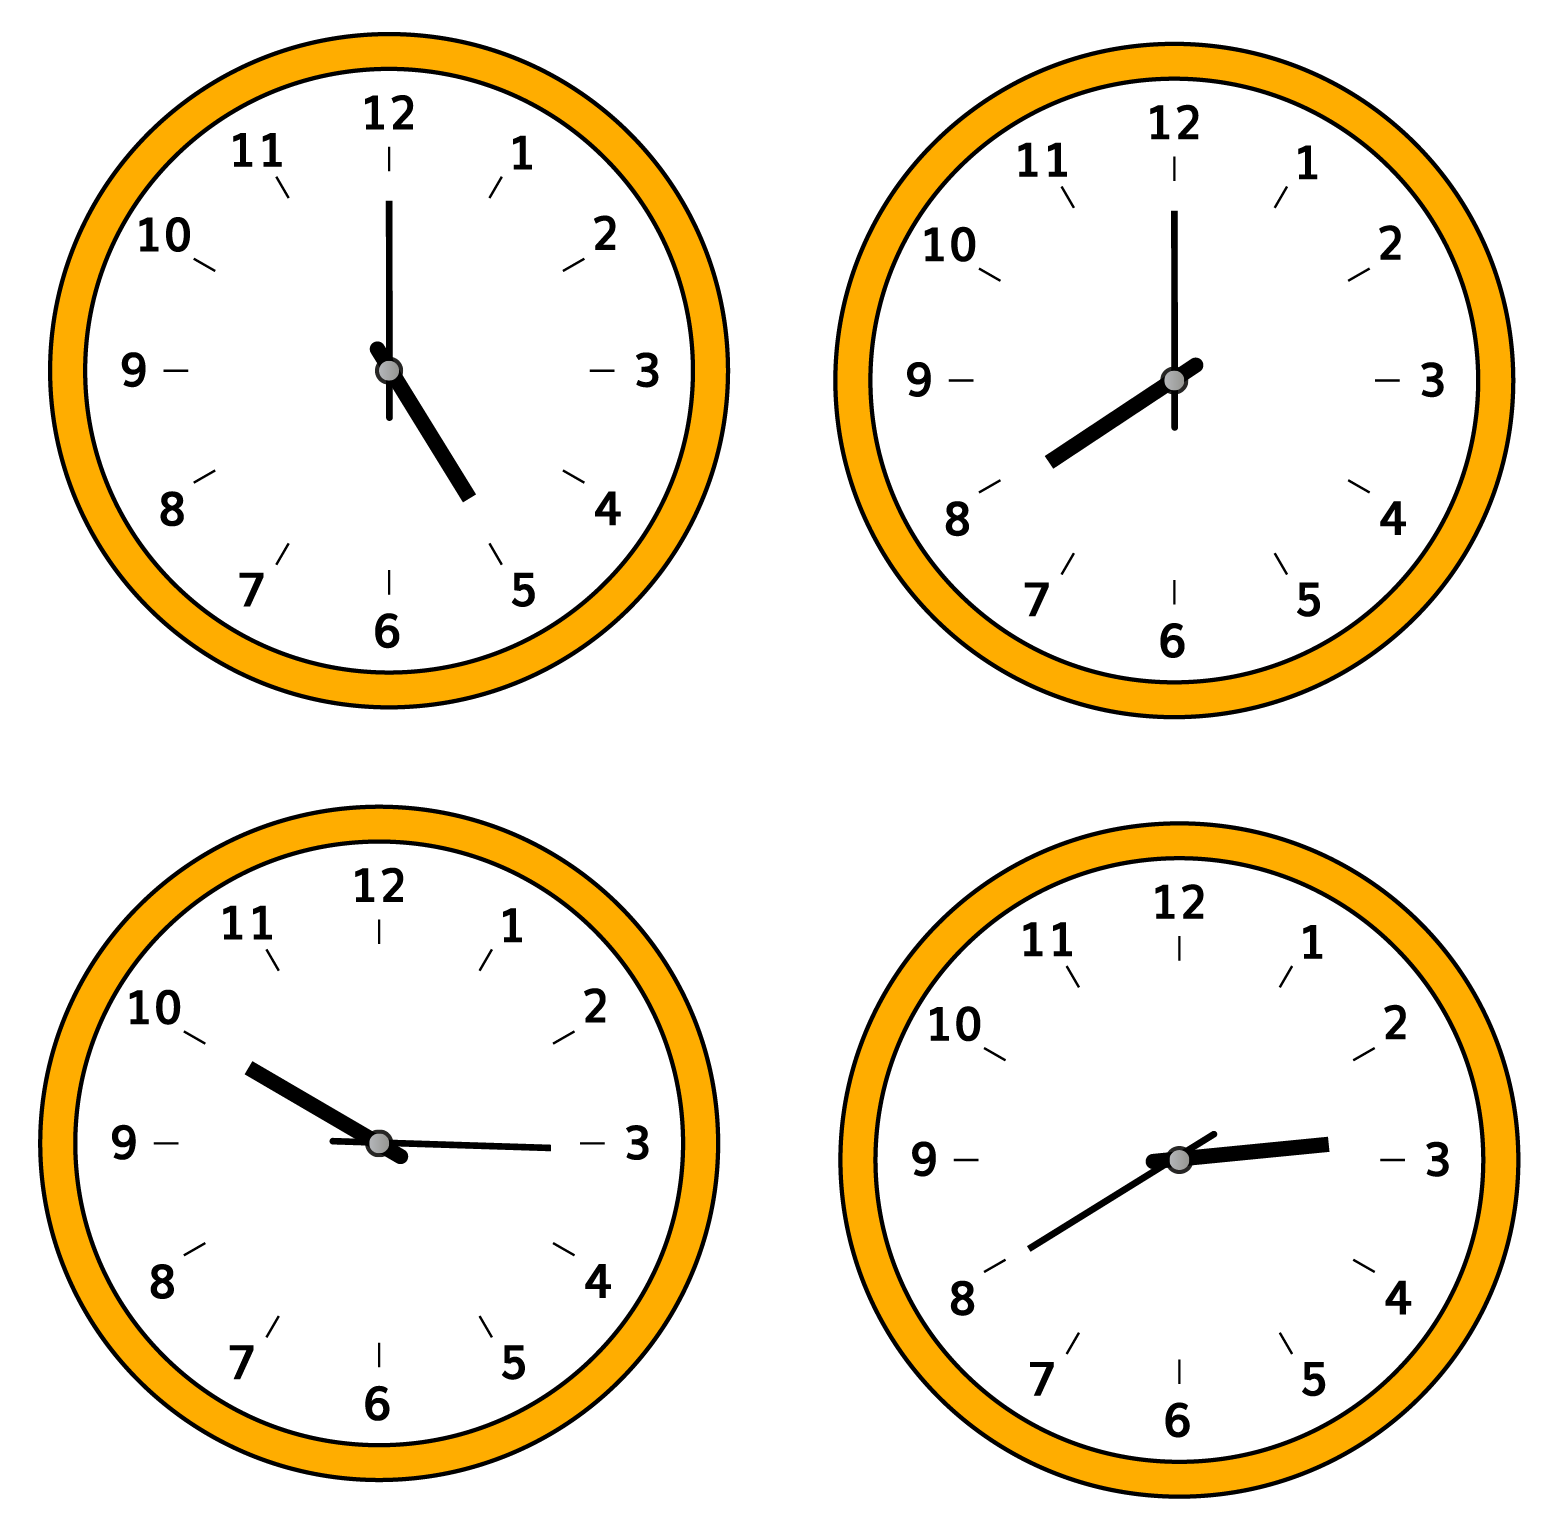 Obtuse Angles in Clock